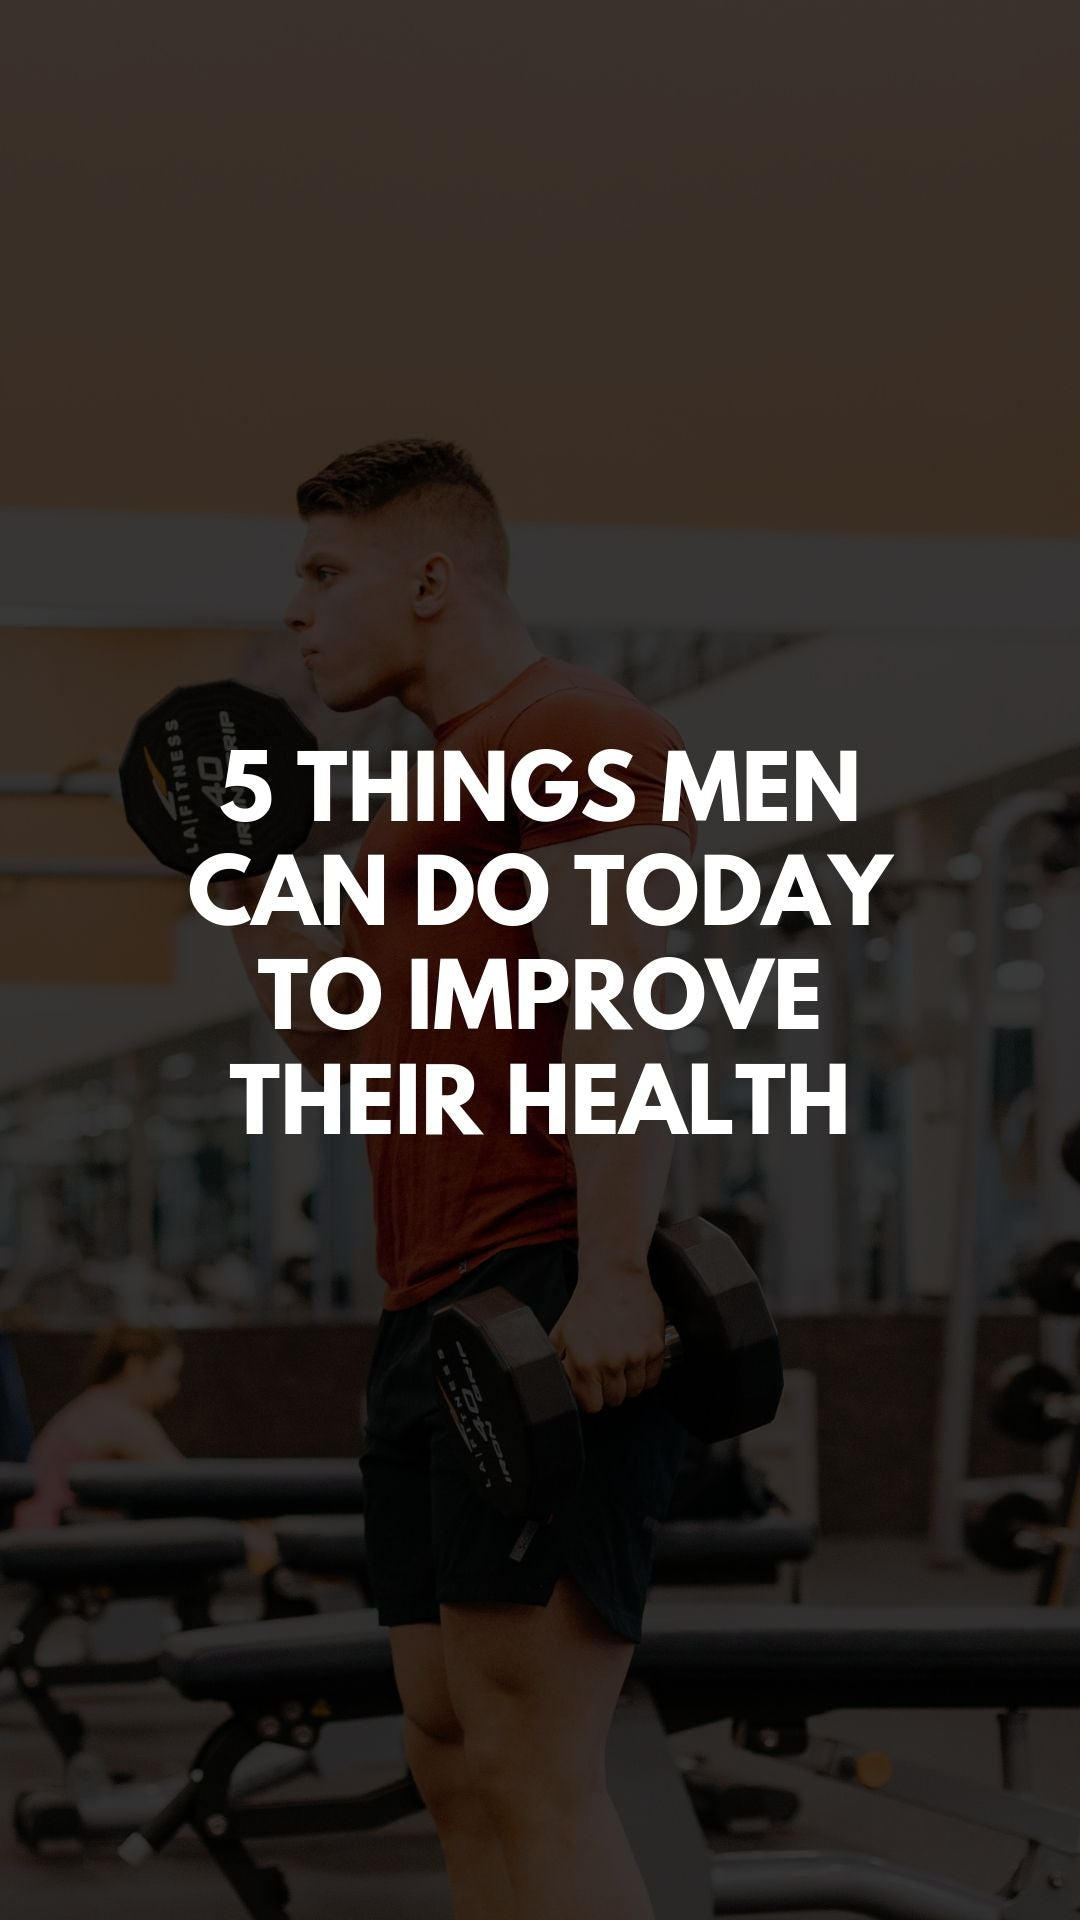 5 Things Men Can Do Today To Improve Their Health